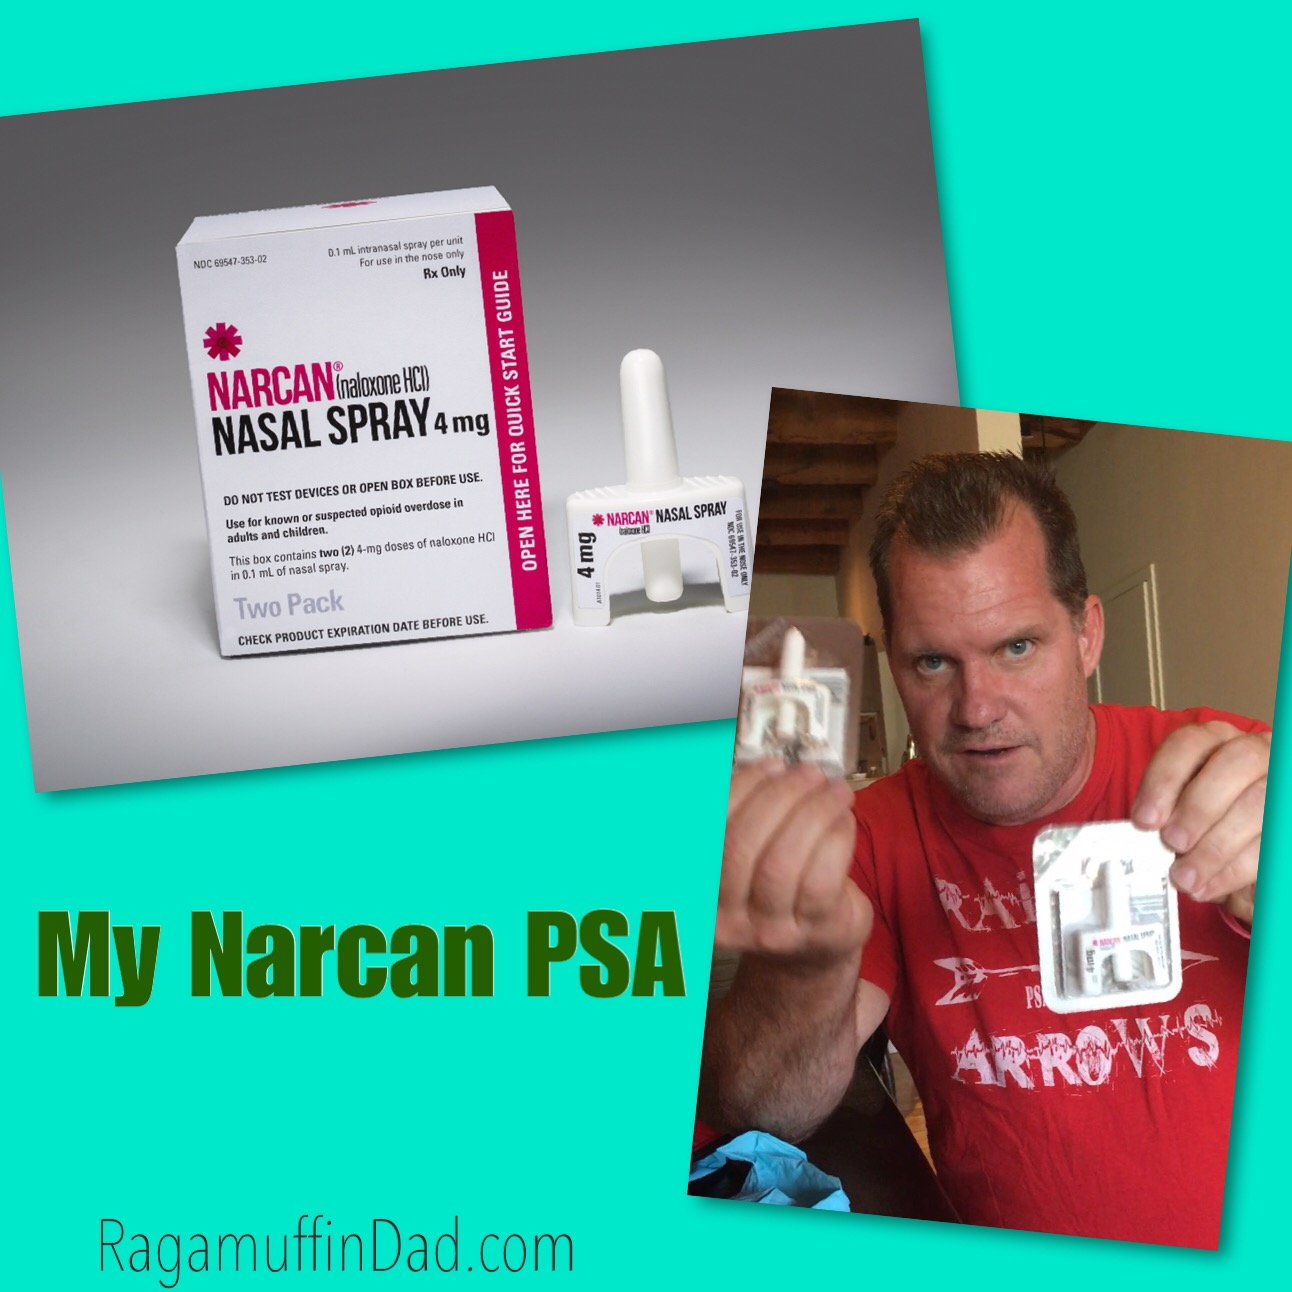 Our NARCAN PSA